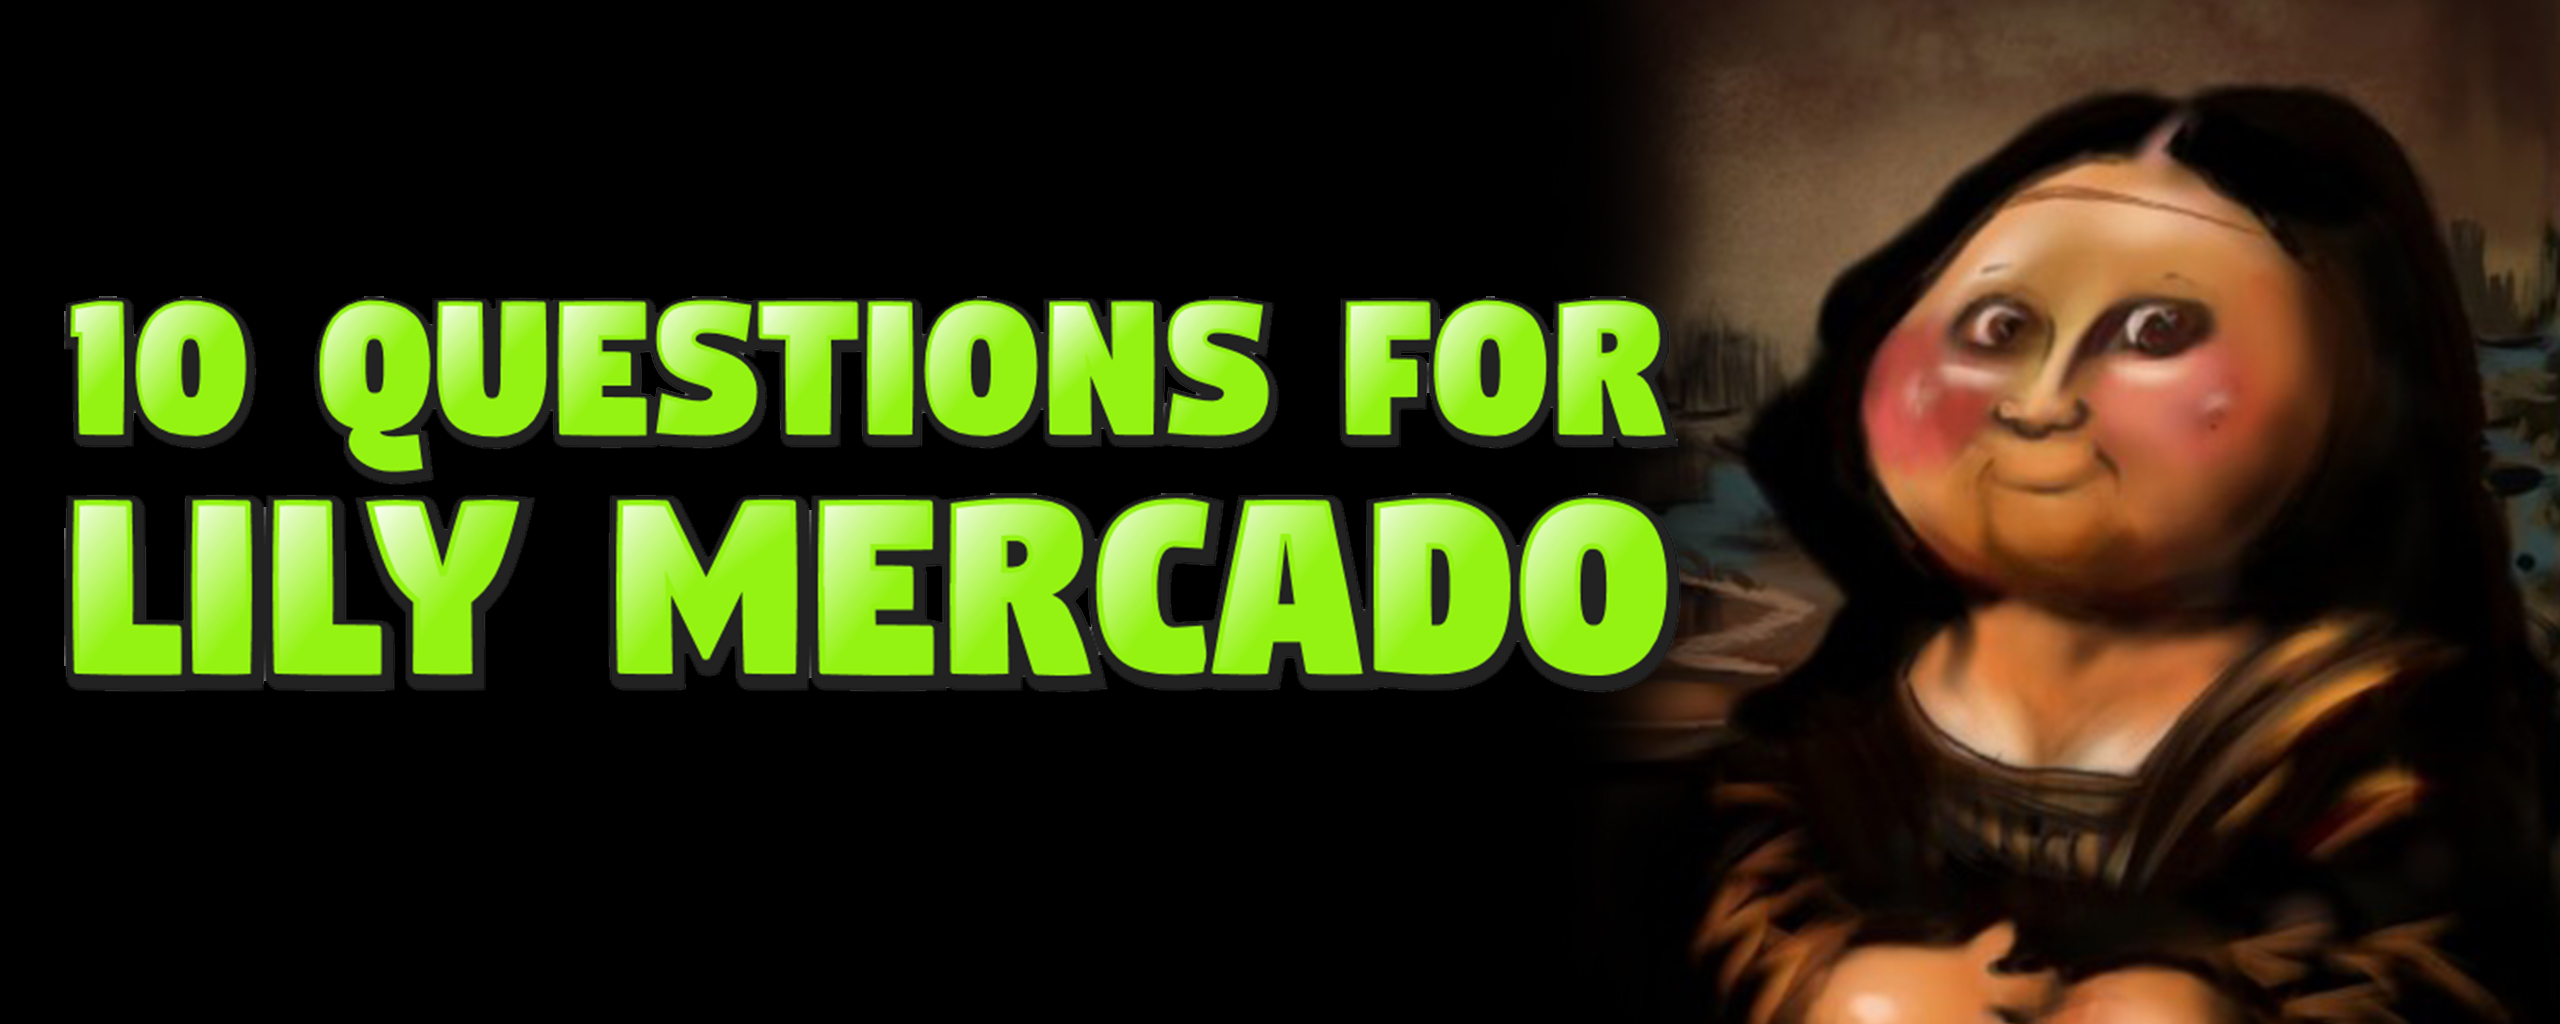 10 Questions for Lily Mercado